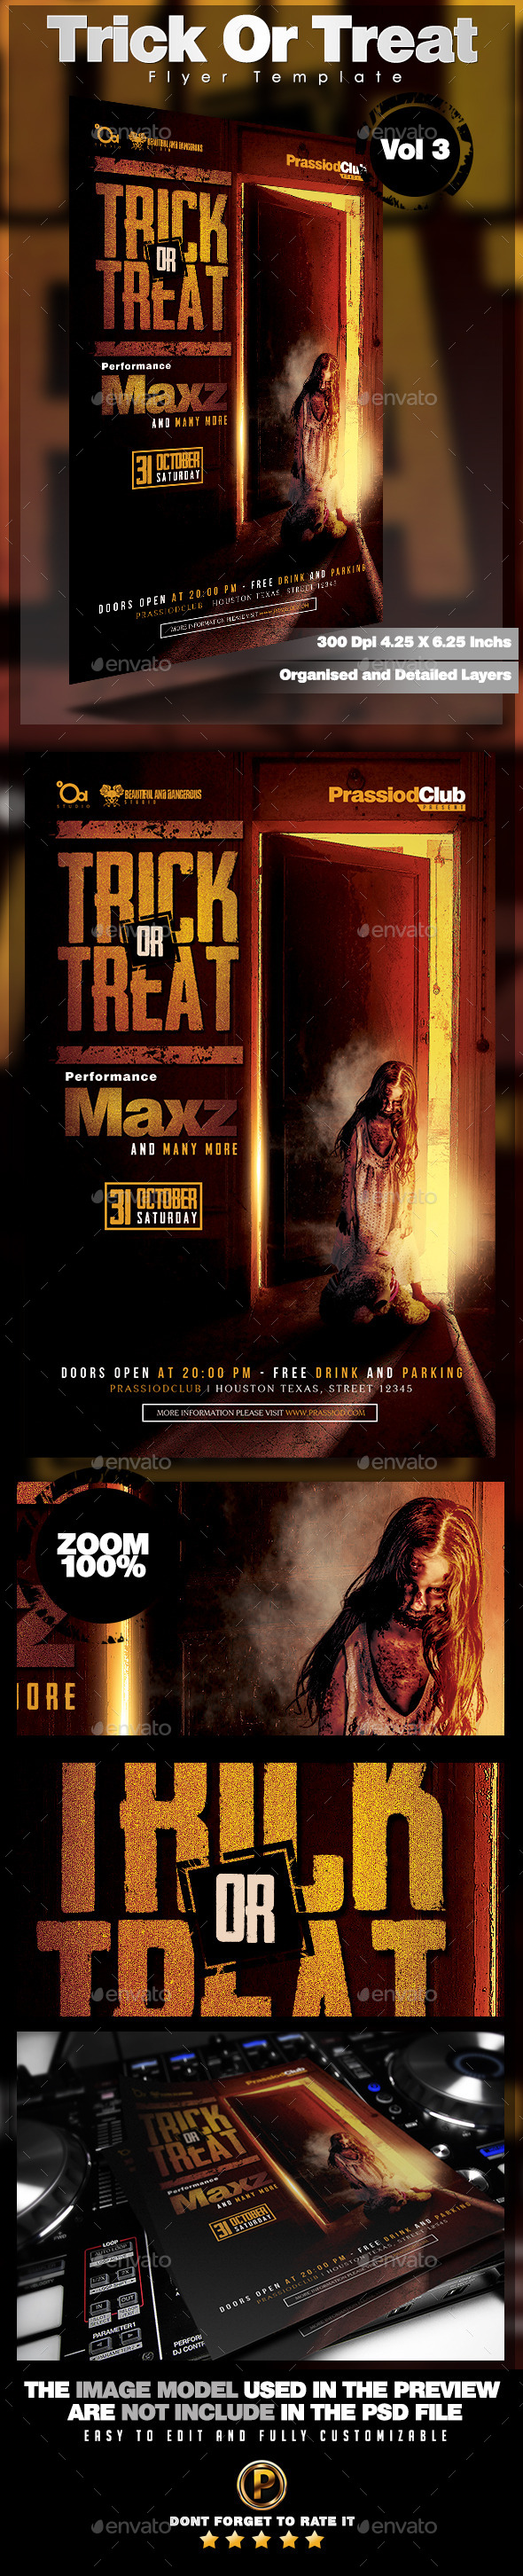 Trick Or Treat Flyer Template Vol 3 - Clubs & Parties Events